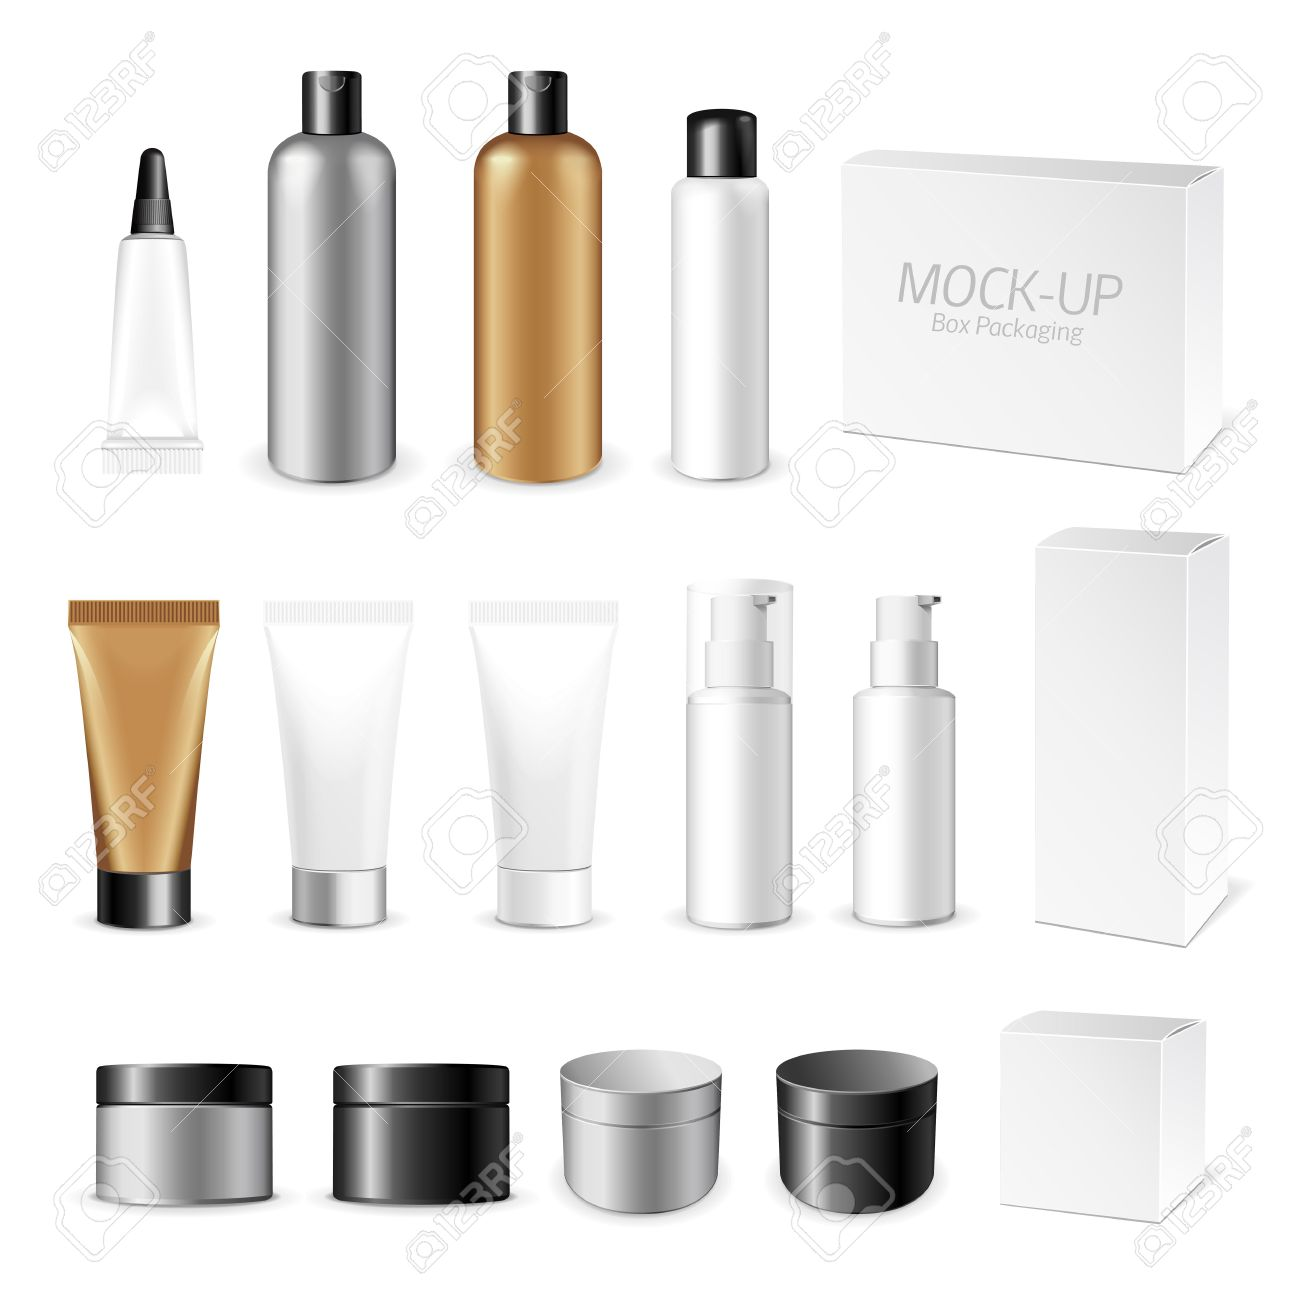 Make up. Tube of cream or gel white plastic product. Container, product and packaging. White background. - 47838329